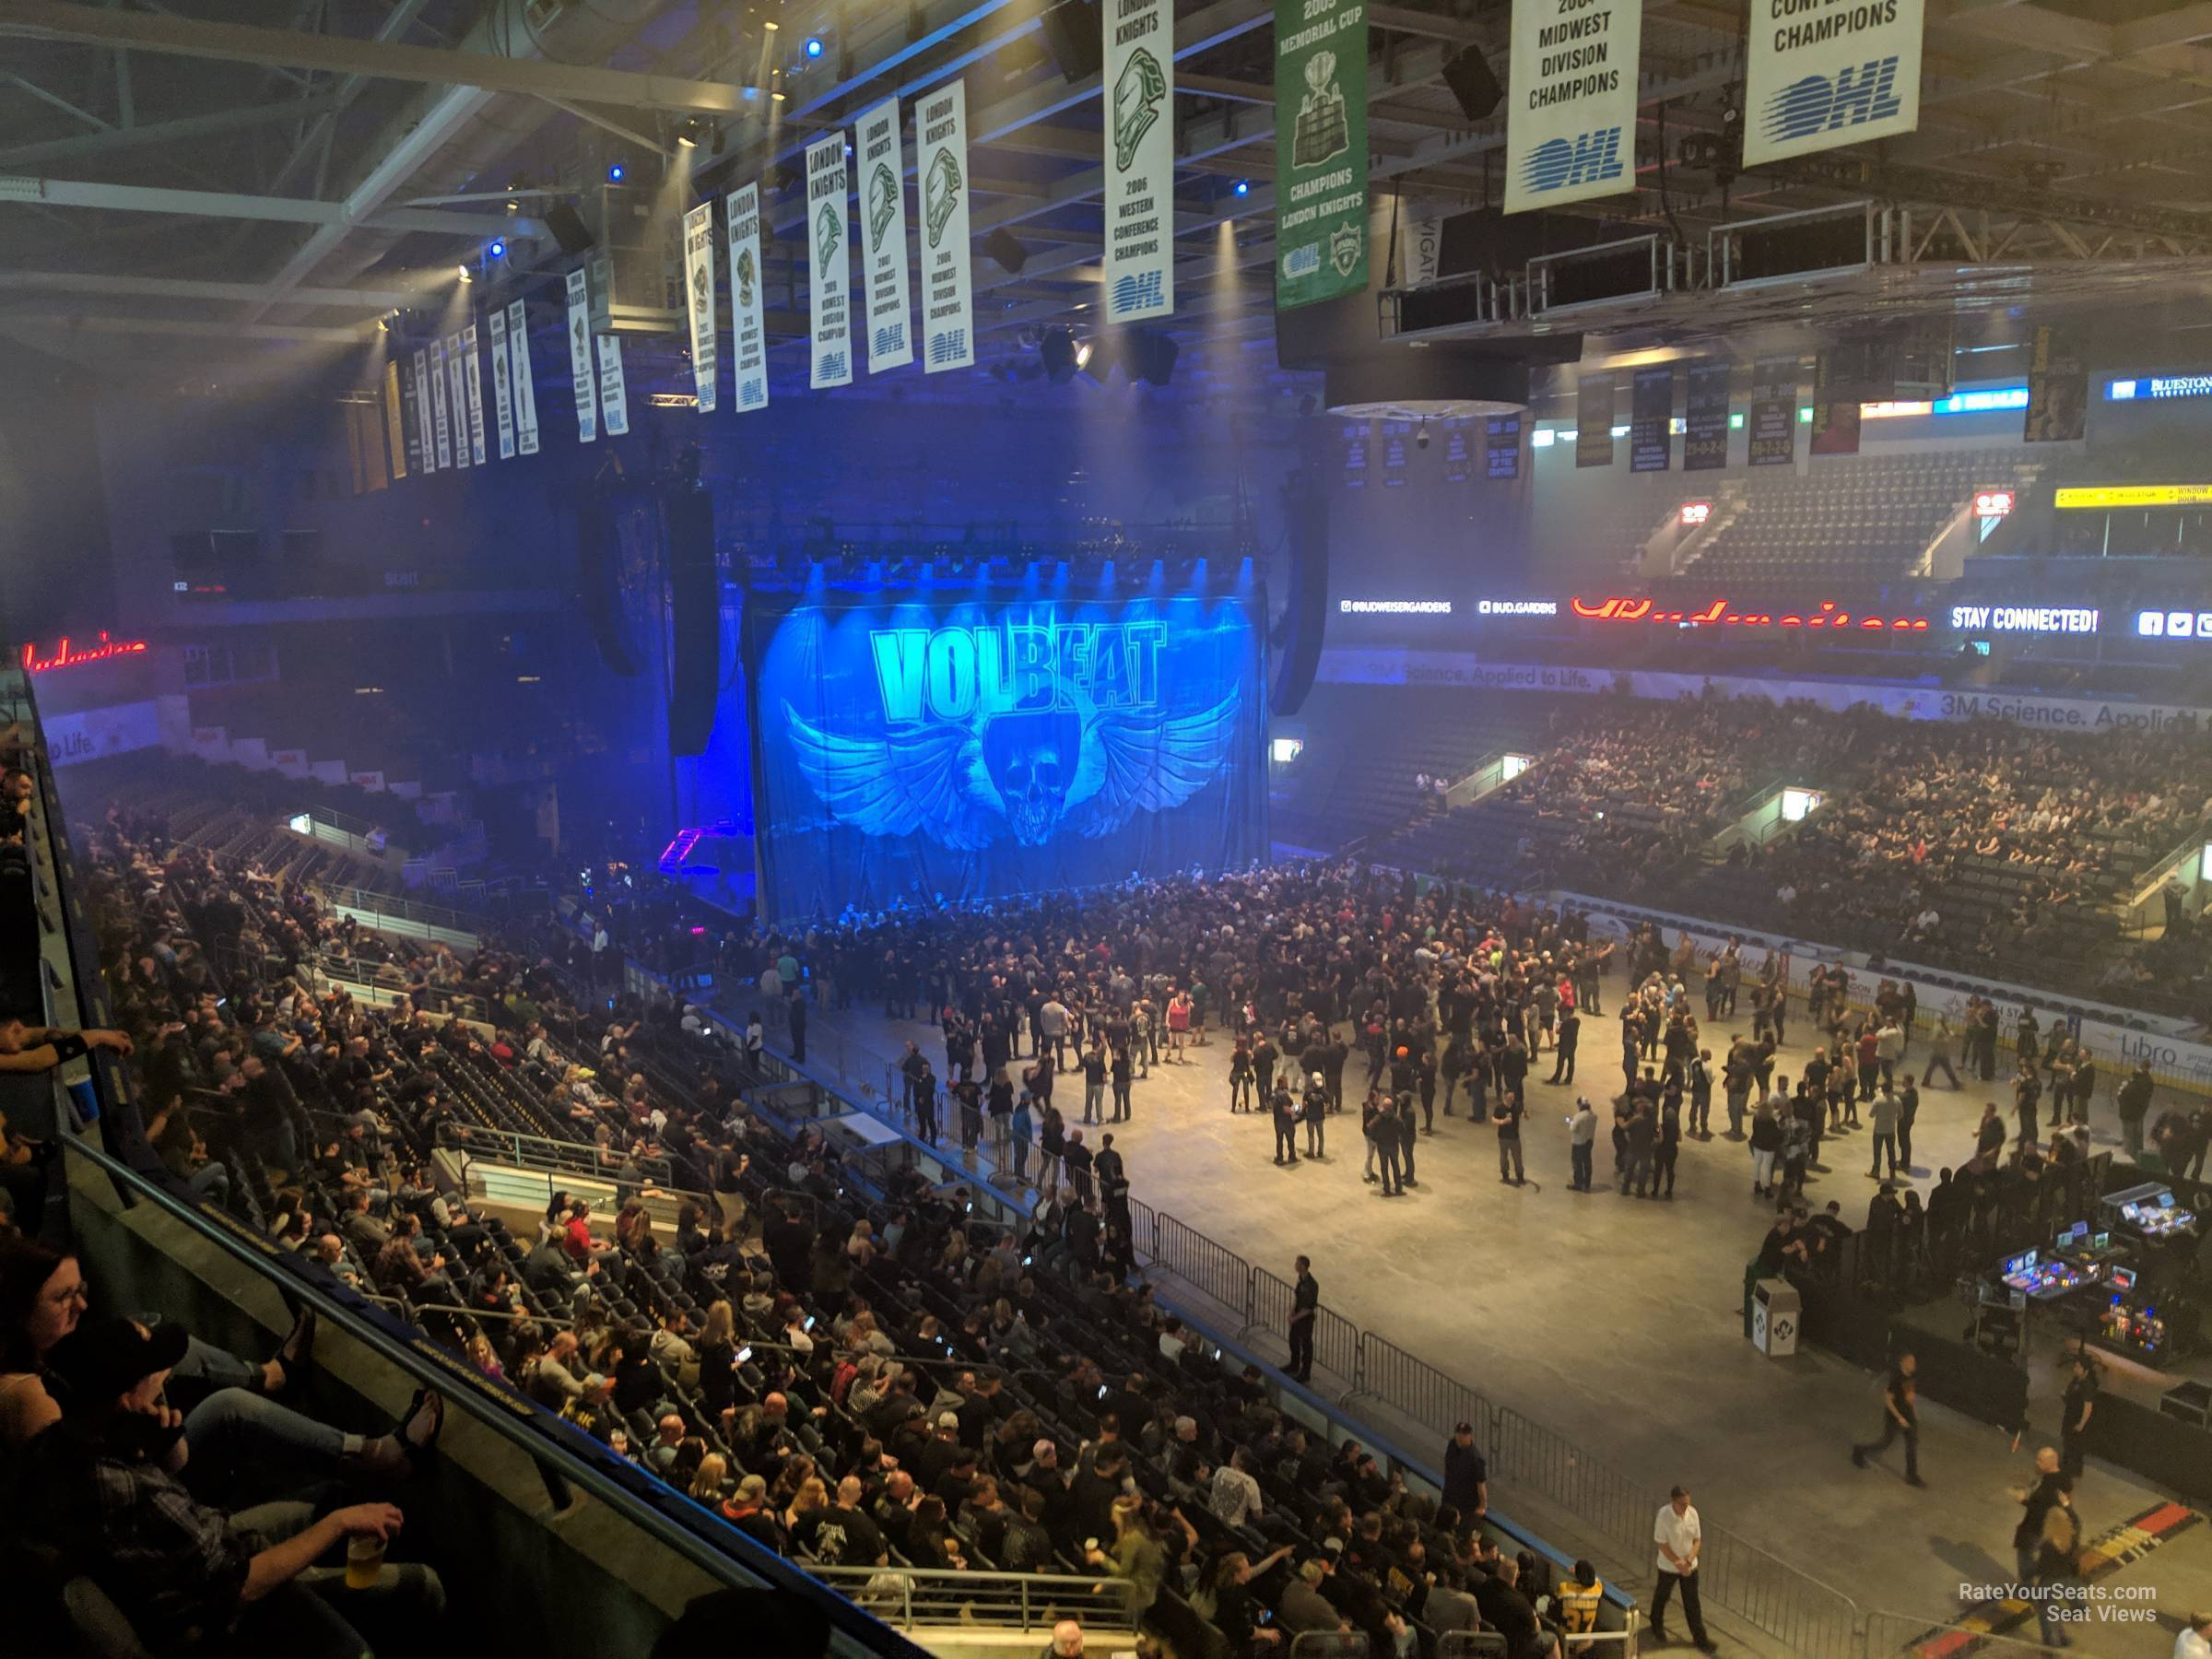 Section 313 At Budweiser Gardens Rateyourseats Com